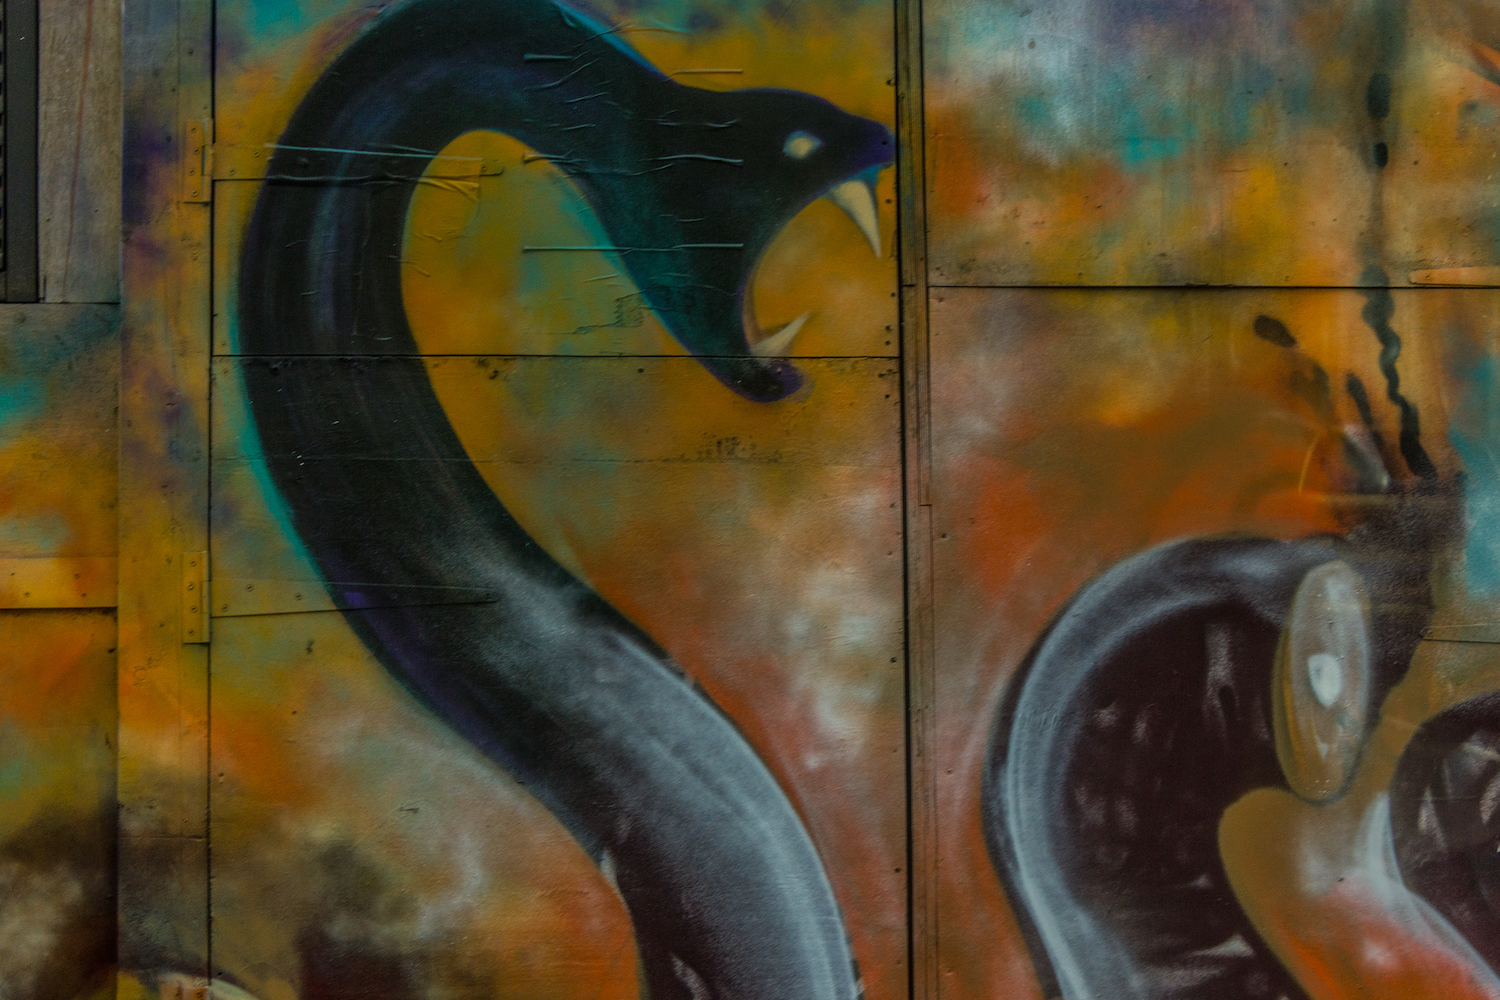 Professional Photography Graffiti Mural Of Snakes On Wall In Brick Lane East London